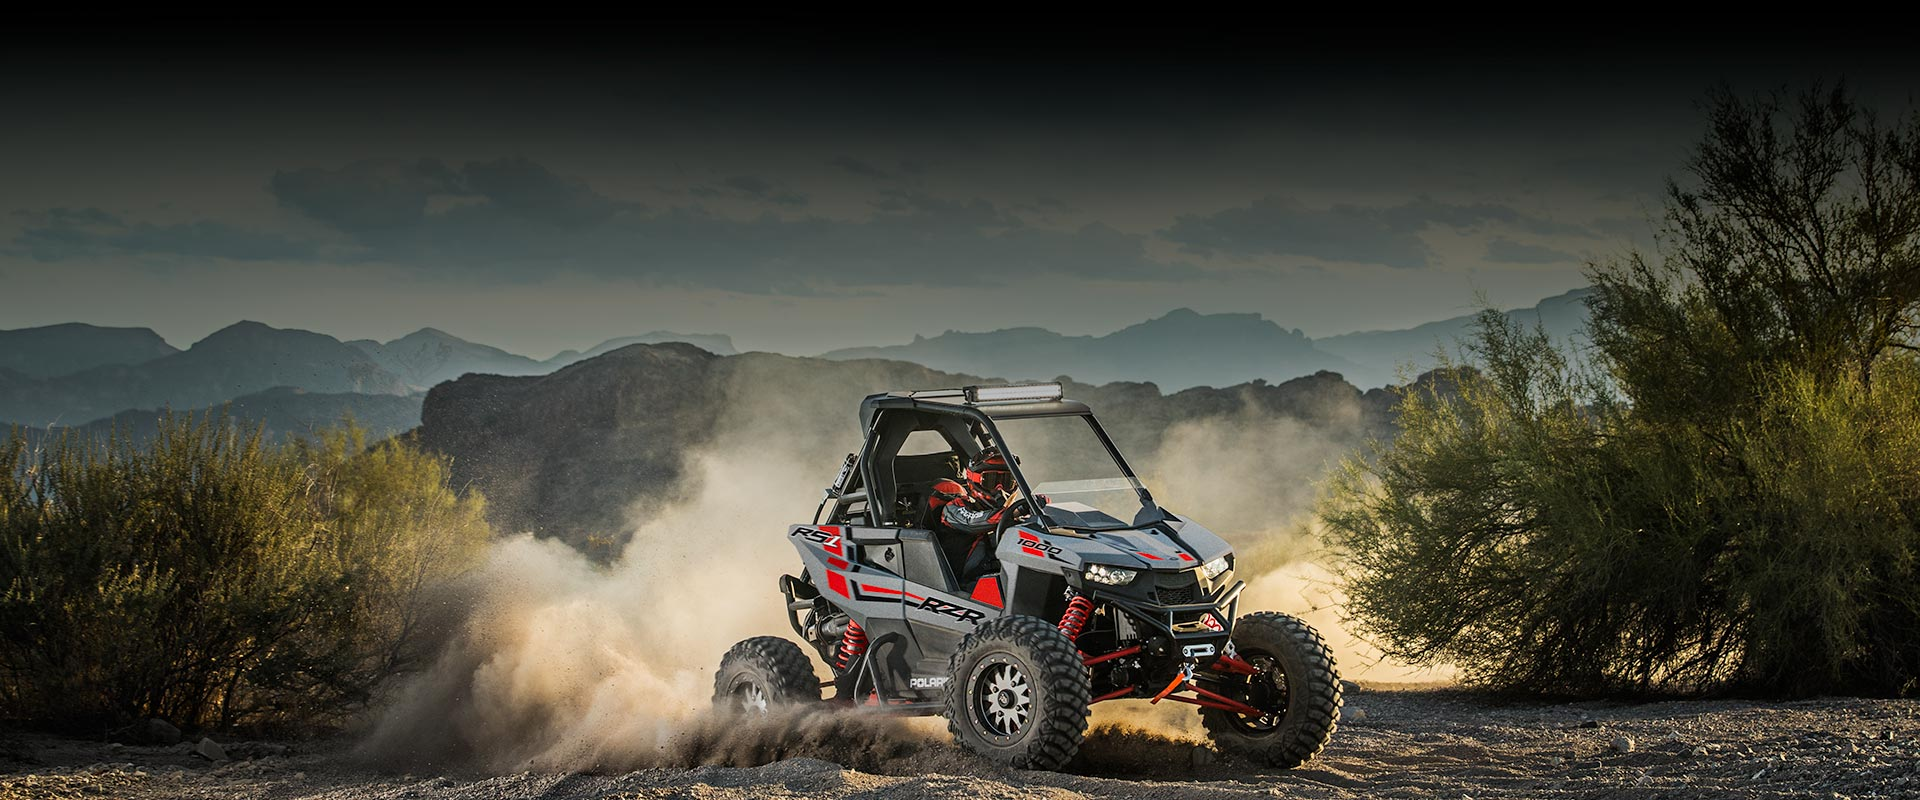 MOST NIMBLE RZR EVER